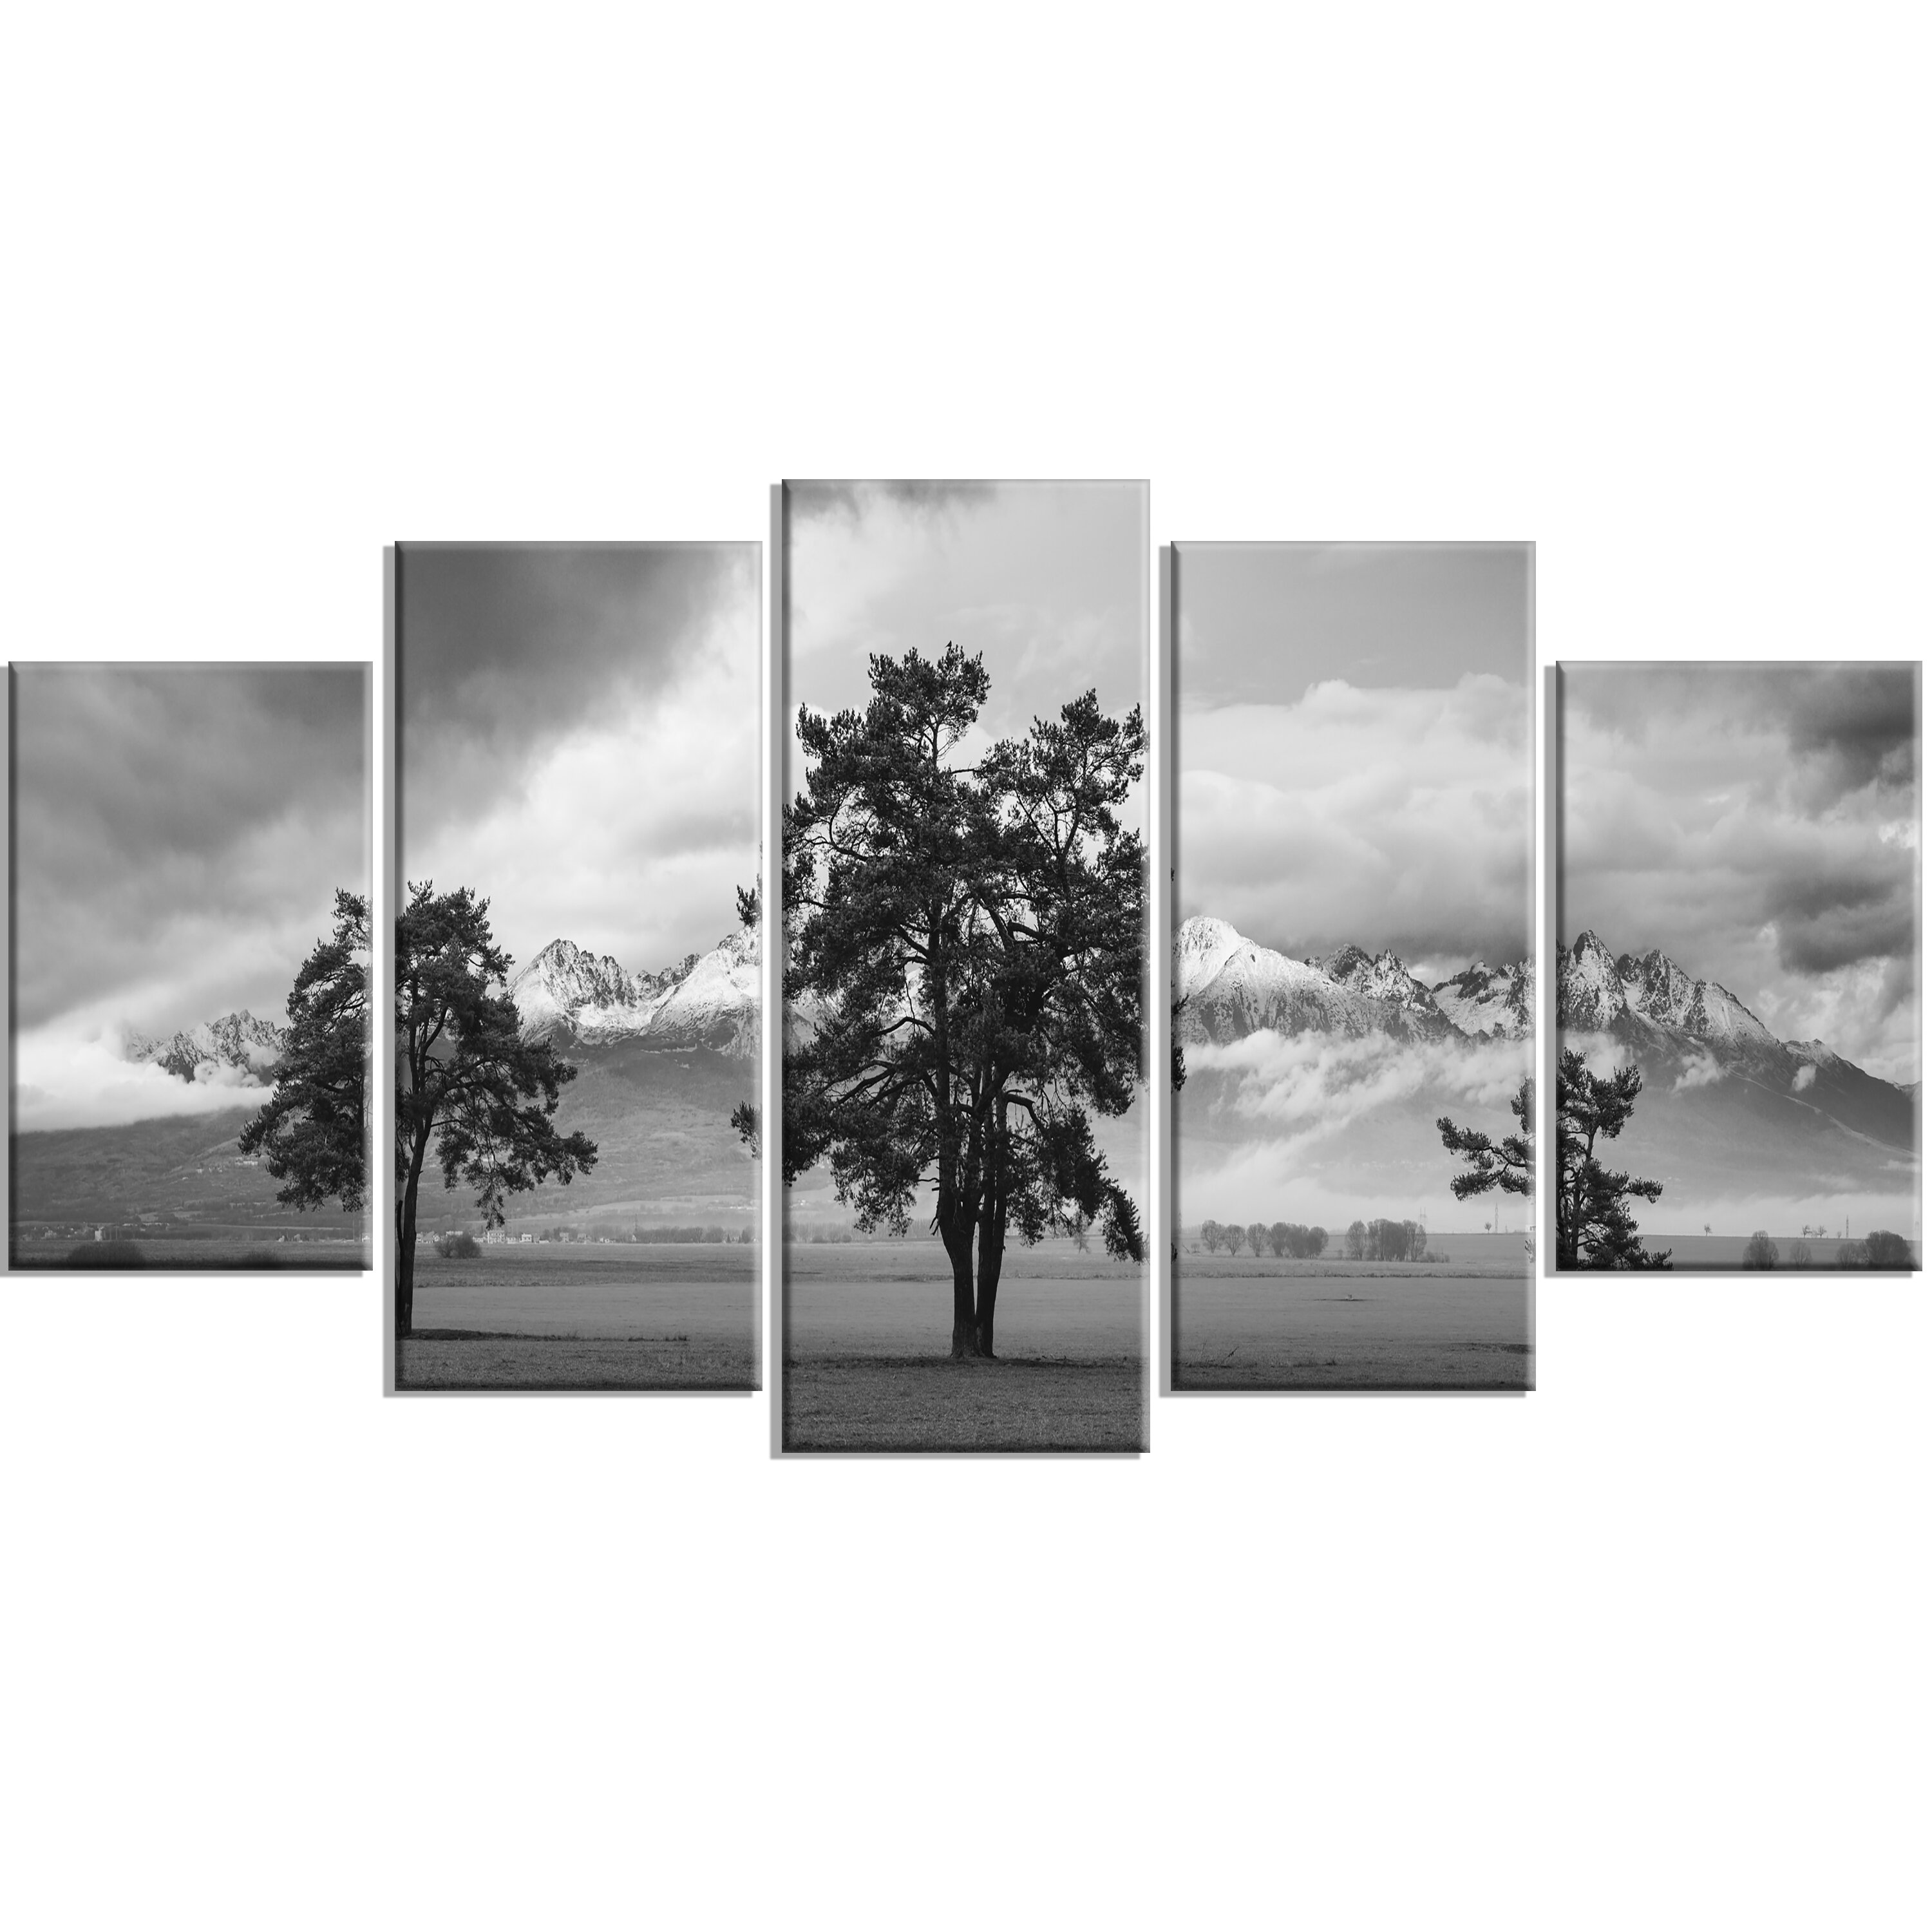 Designart Three Trees In Front Of Mountains 5 Piece Wall Art On Wrapped Canvas Set Reviews Wayfair